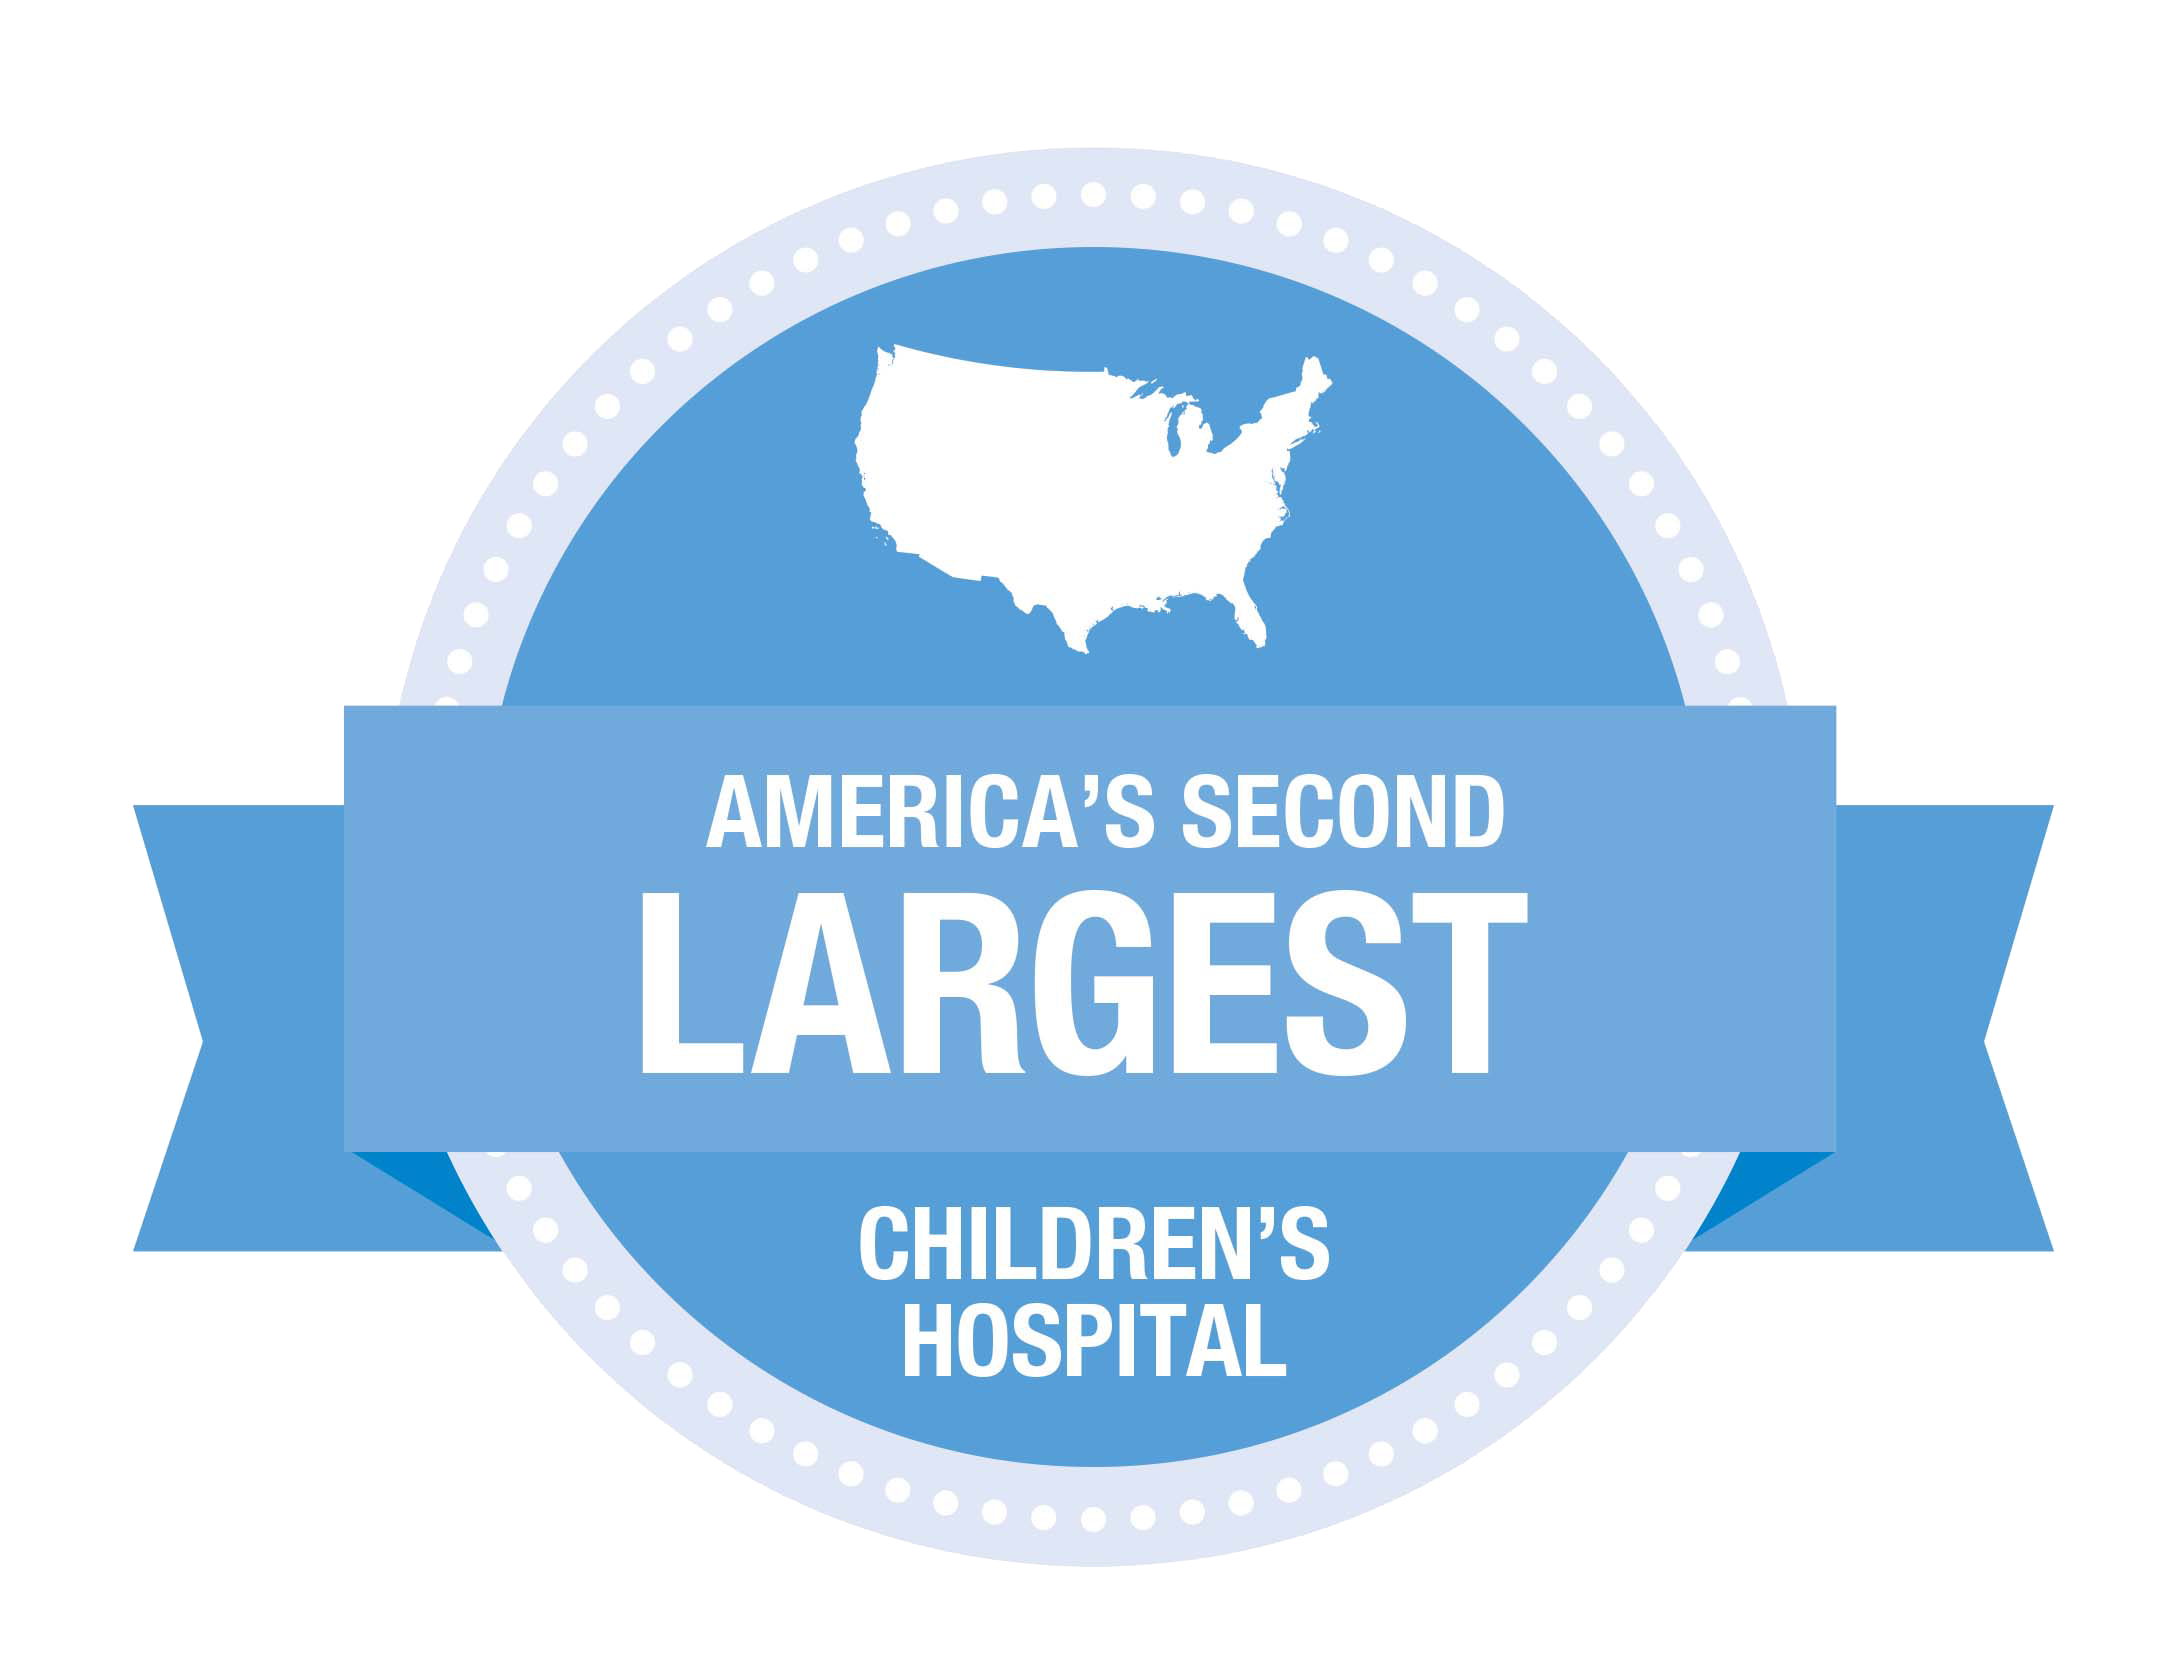 America's Second Largest Children's Hospital Badge